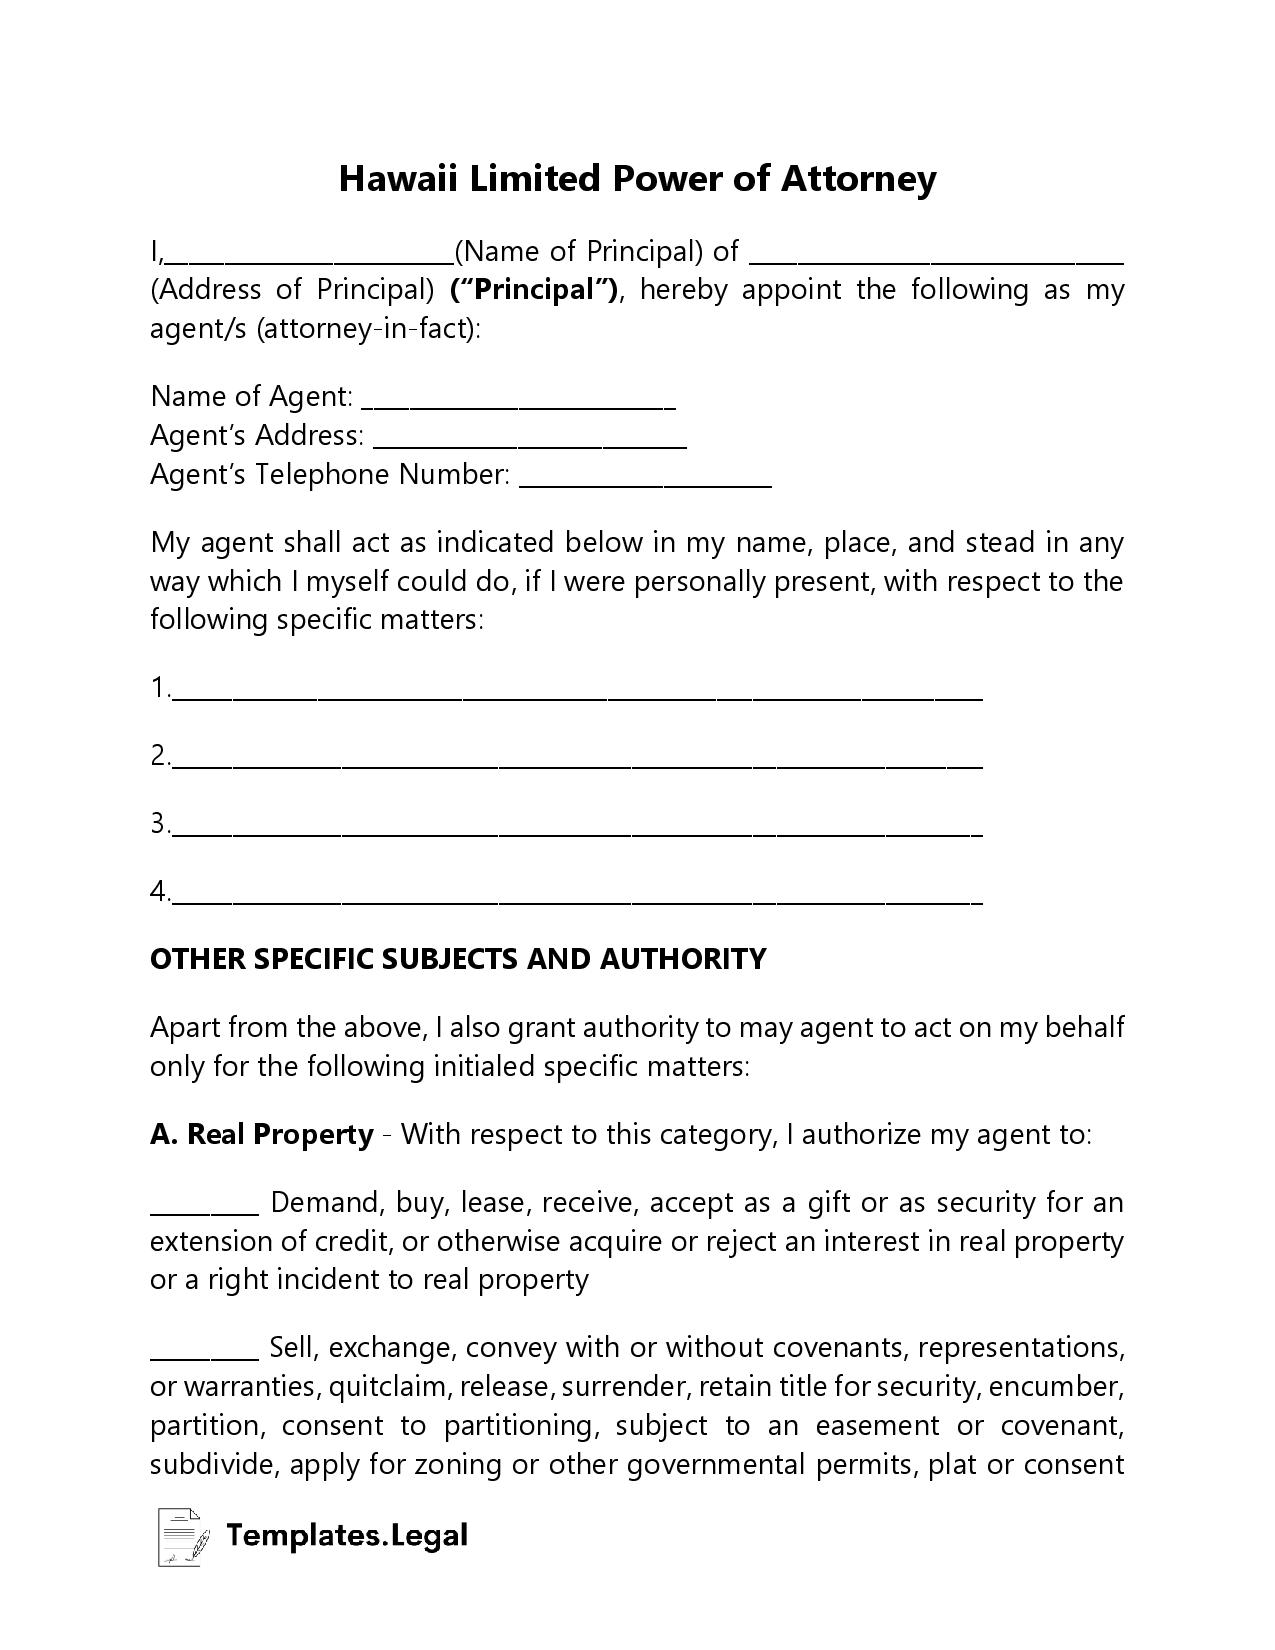 Hawaii Limited Power of Attorney - Templates.Legal